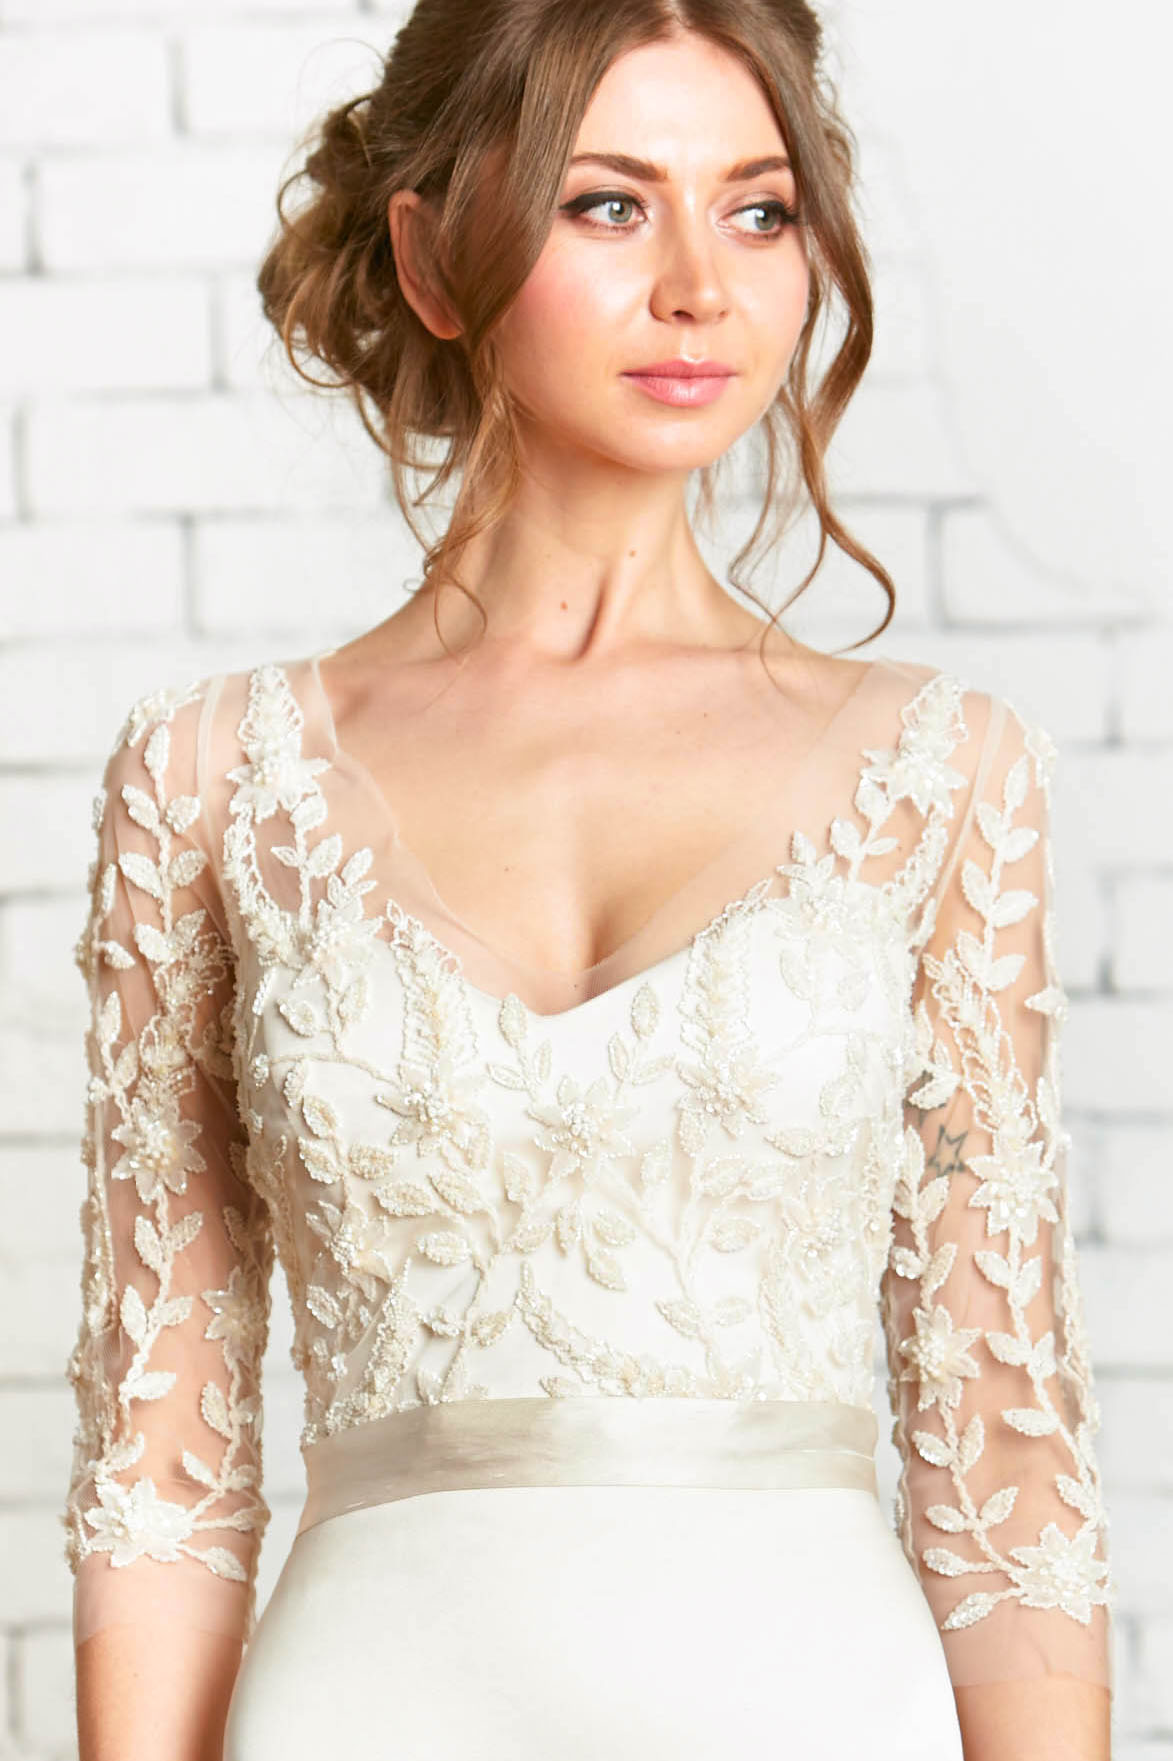 LenaTop_1Front_Beaded_Luxe_Illusion_Top_Sleeves.jpg